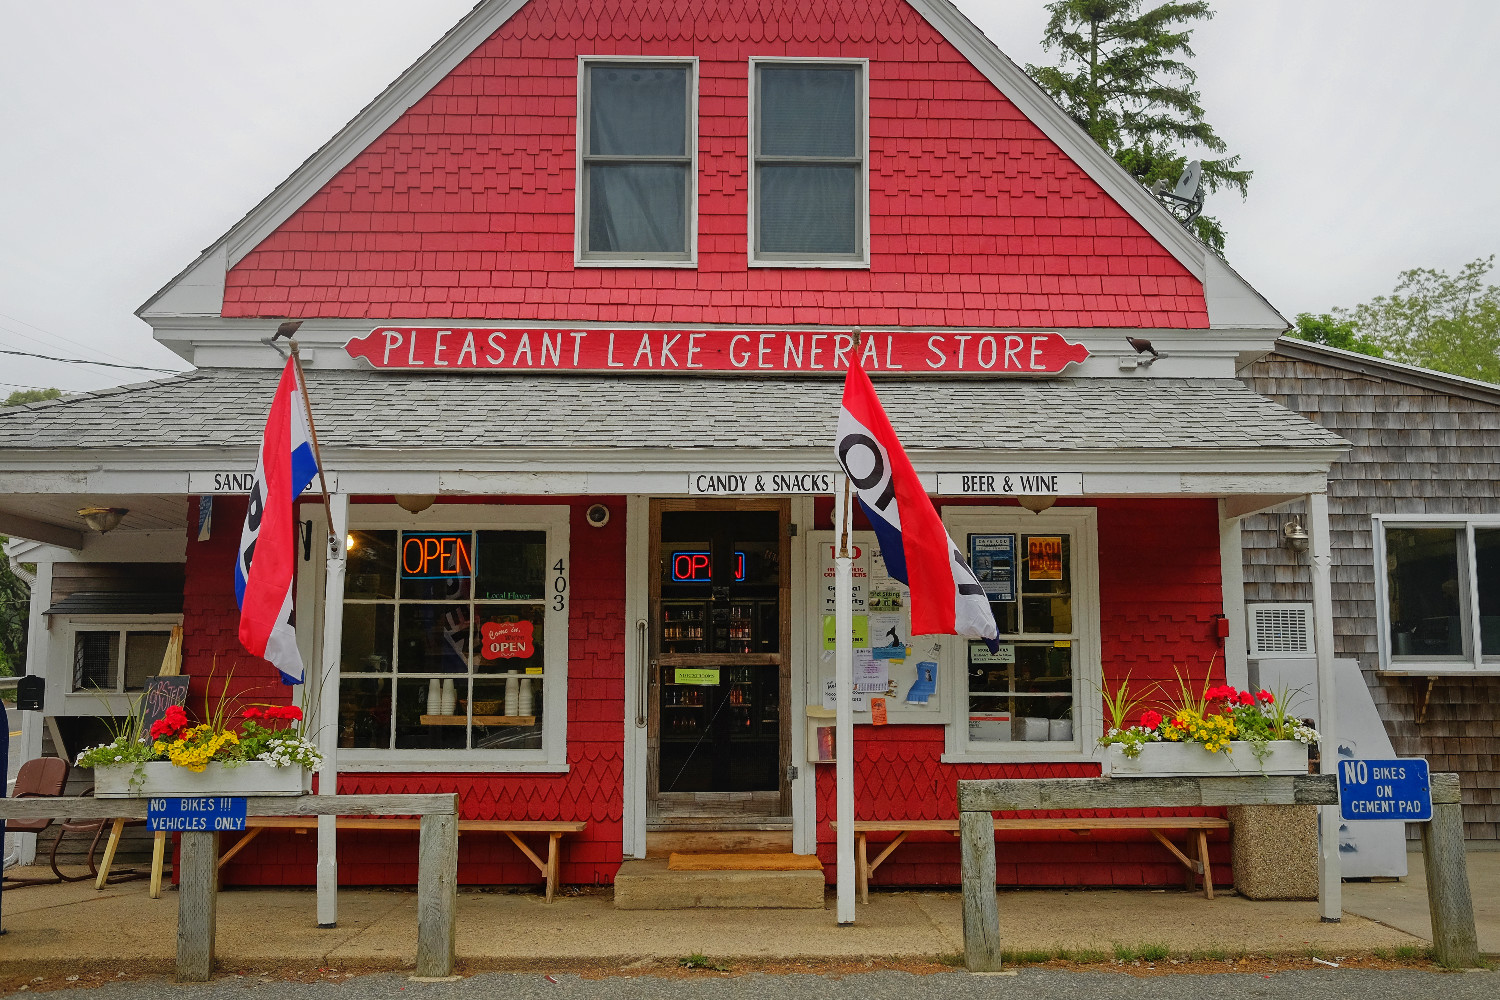 2nd breakfast at trailside Pleasant Lake General Store, also known for their Shepherd's pie.